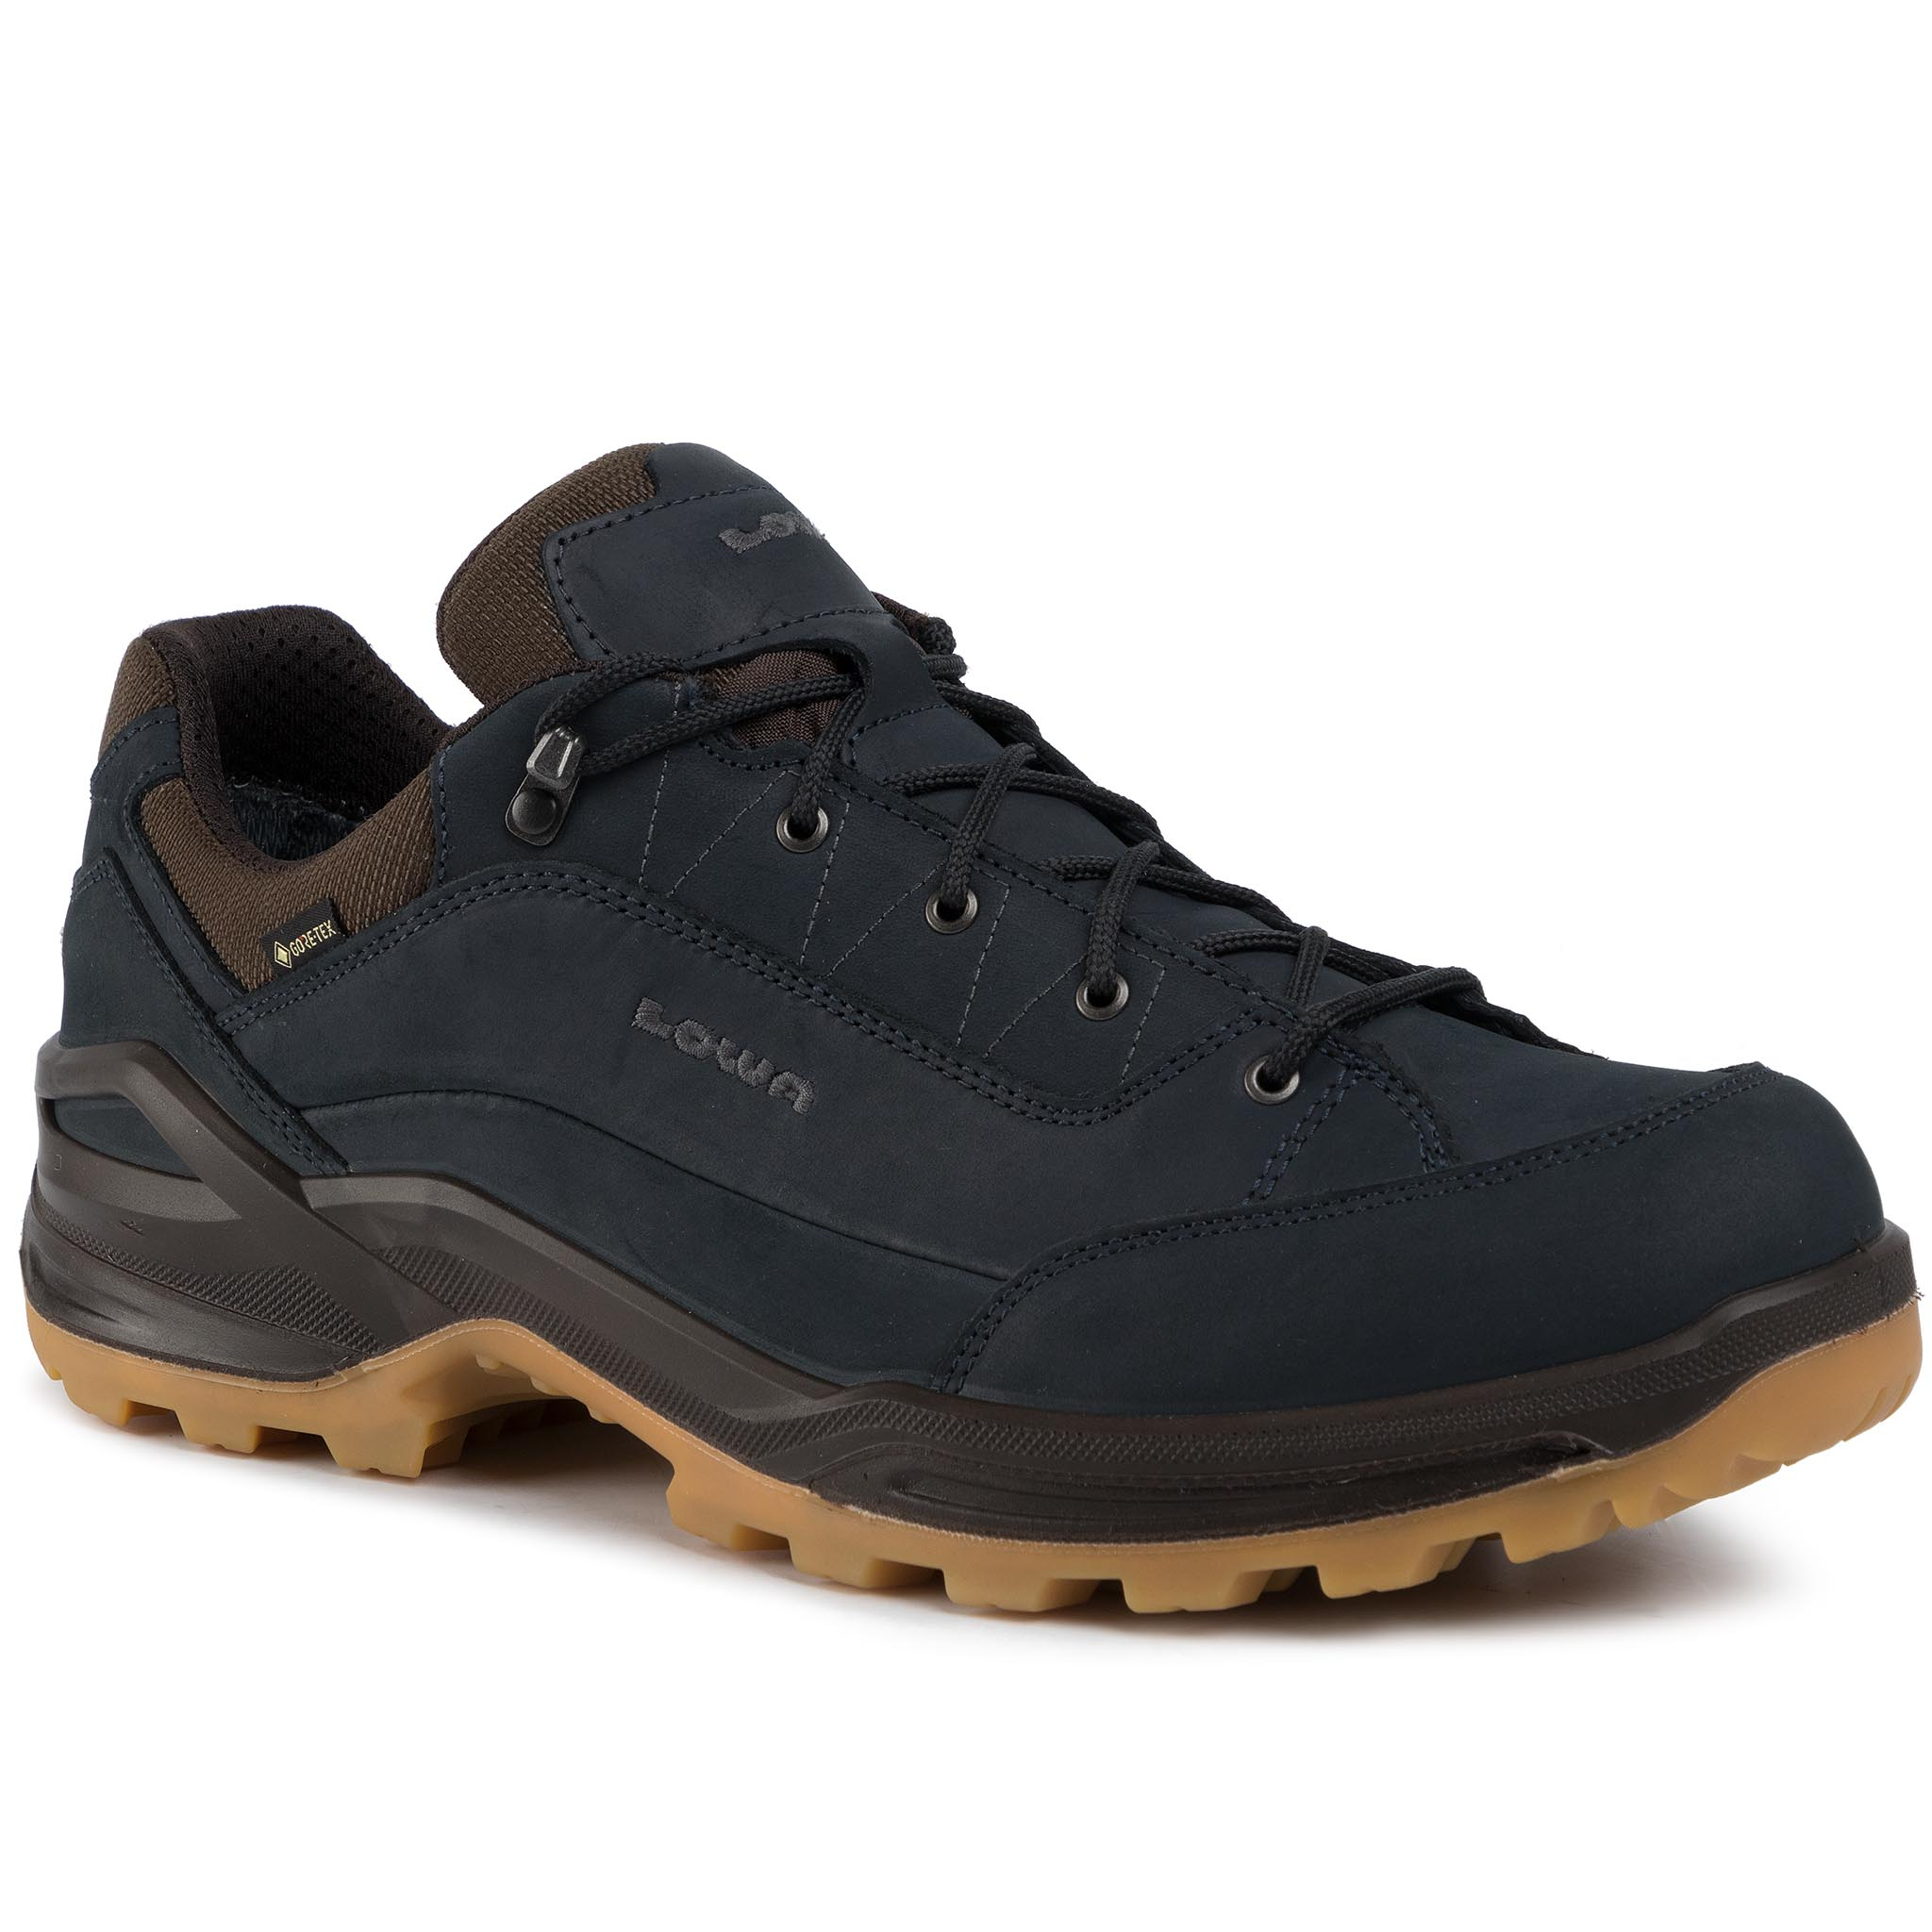 Trekkings LOWA - Renegade Gtx Lo GORE-TEX 310963 Navy/Honey 6961